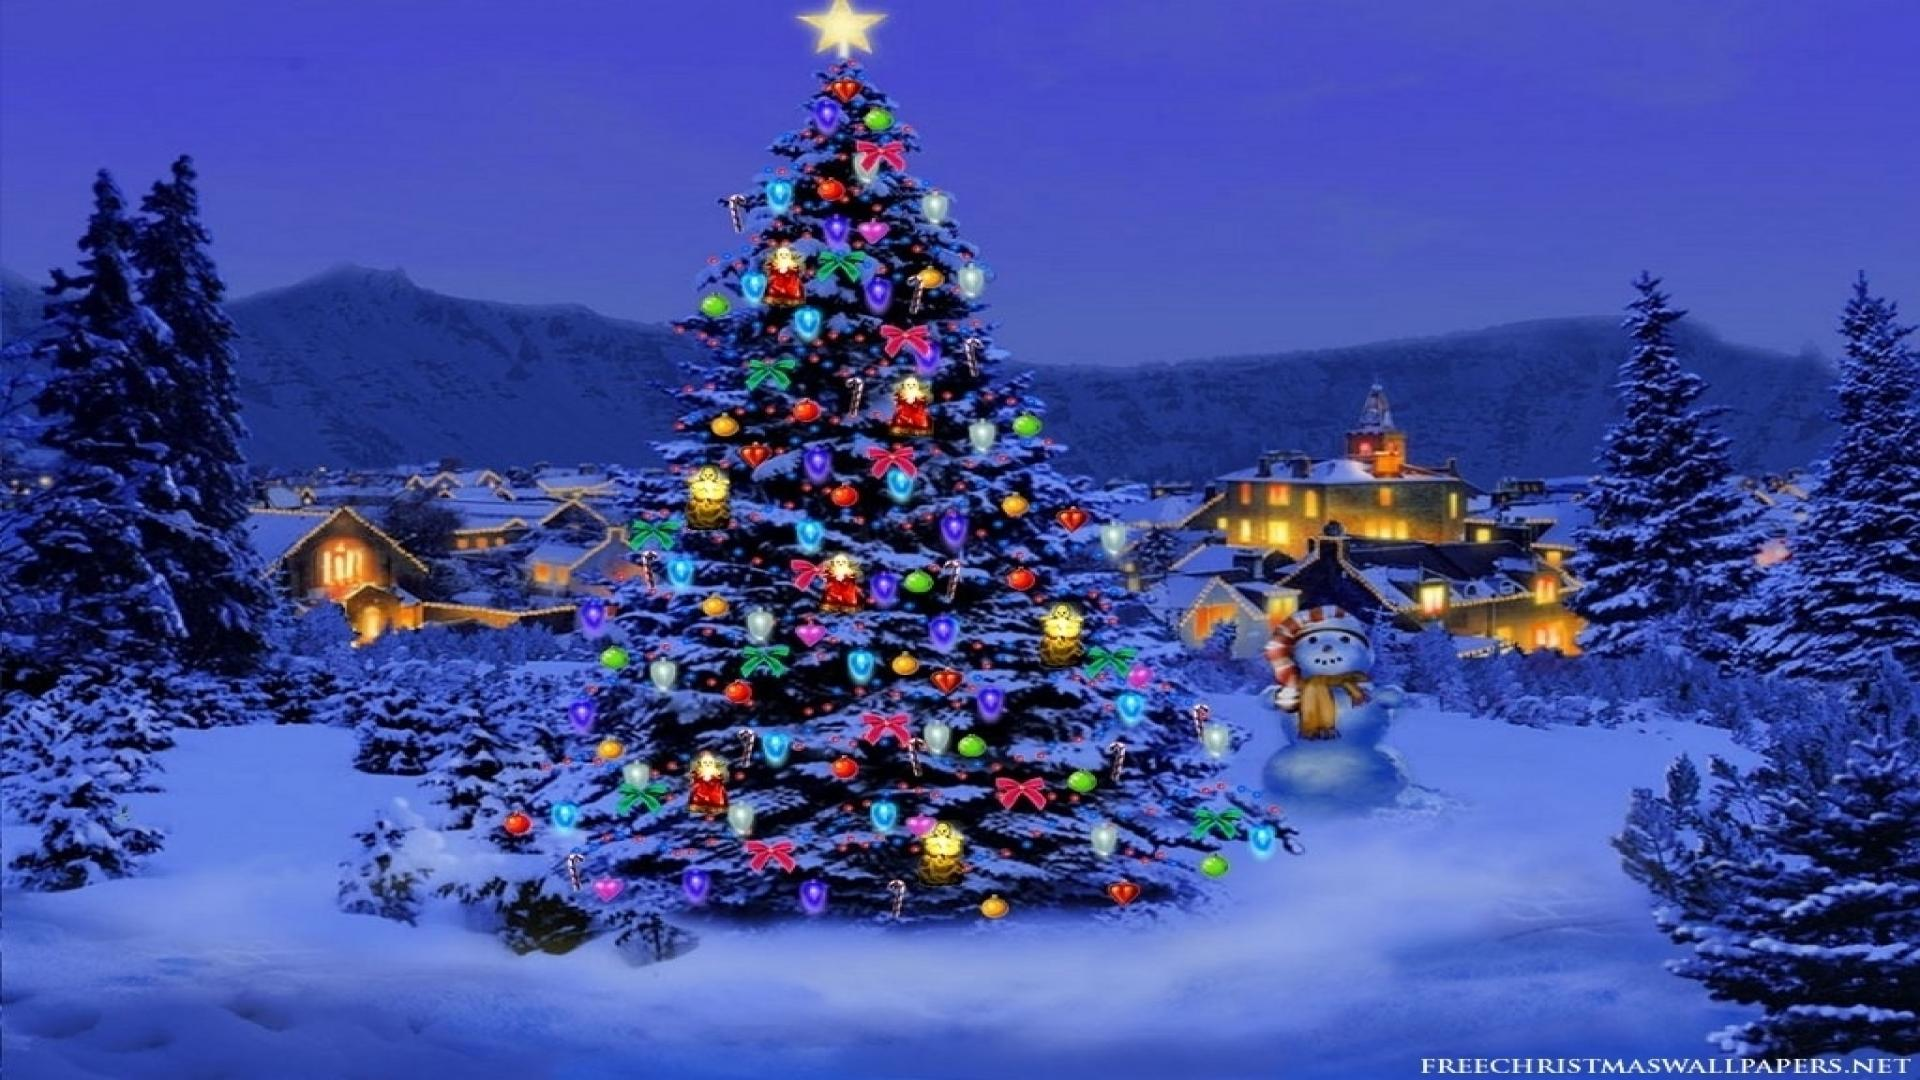 [43+] Christmas Wallpapers For Desktop 1920x1080 On